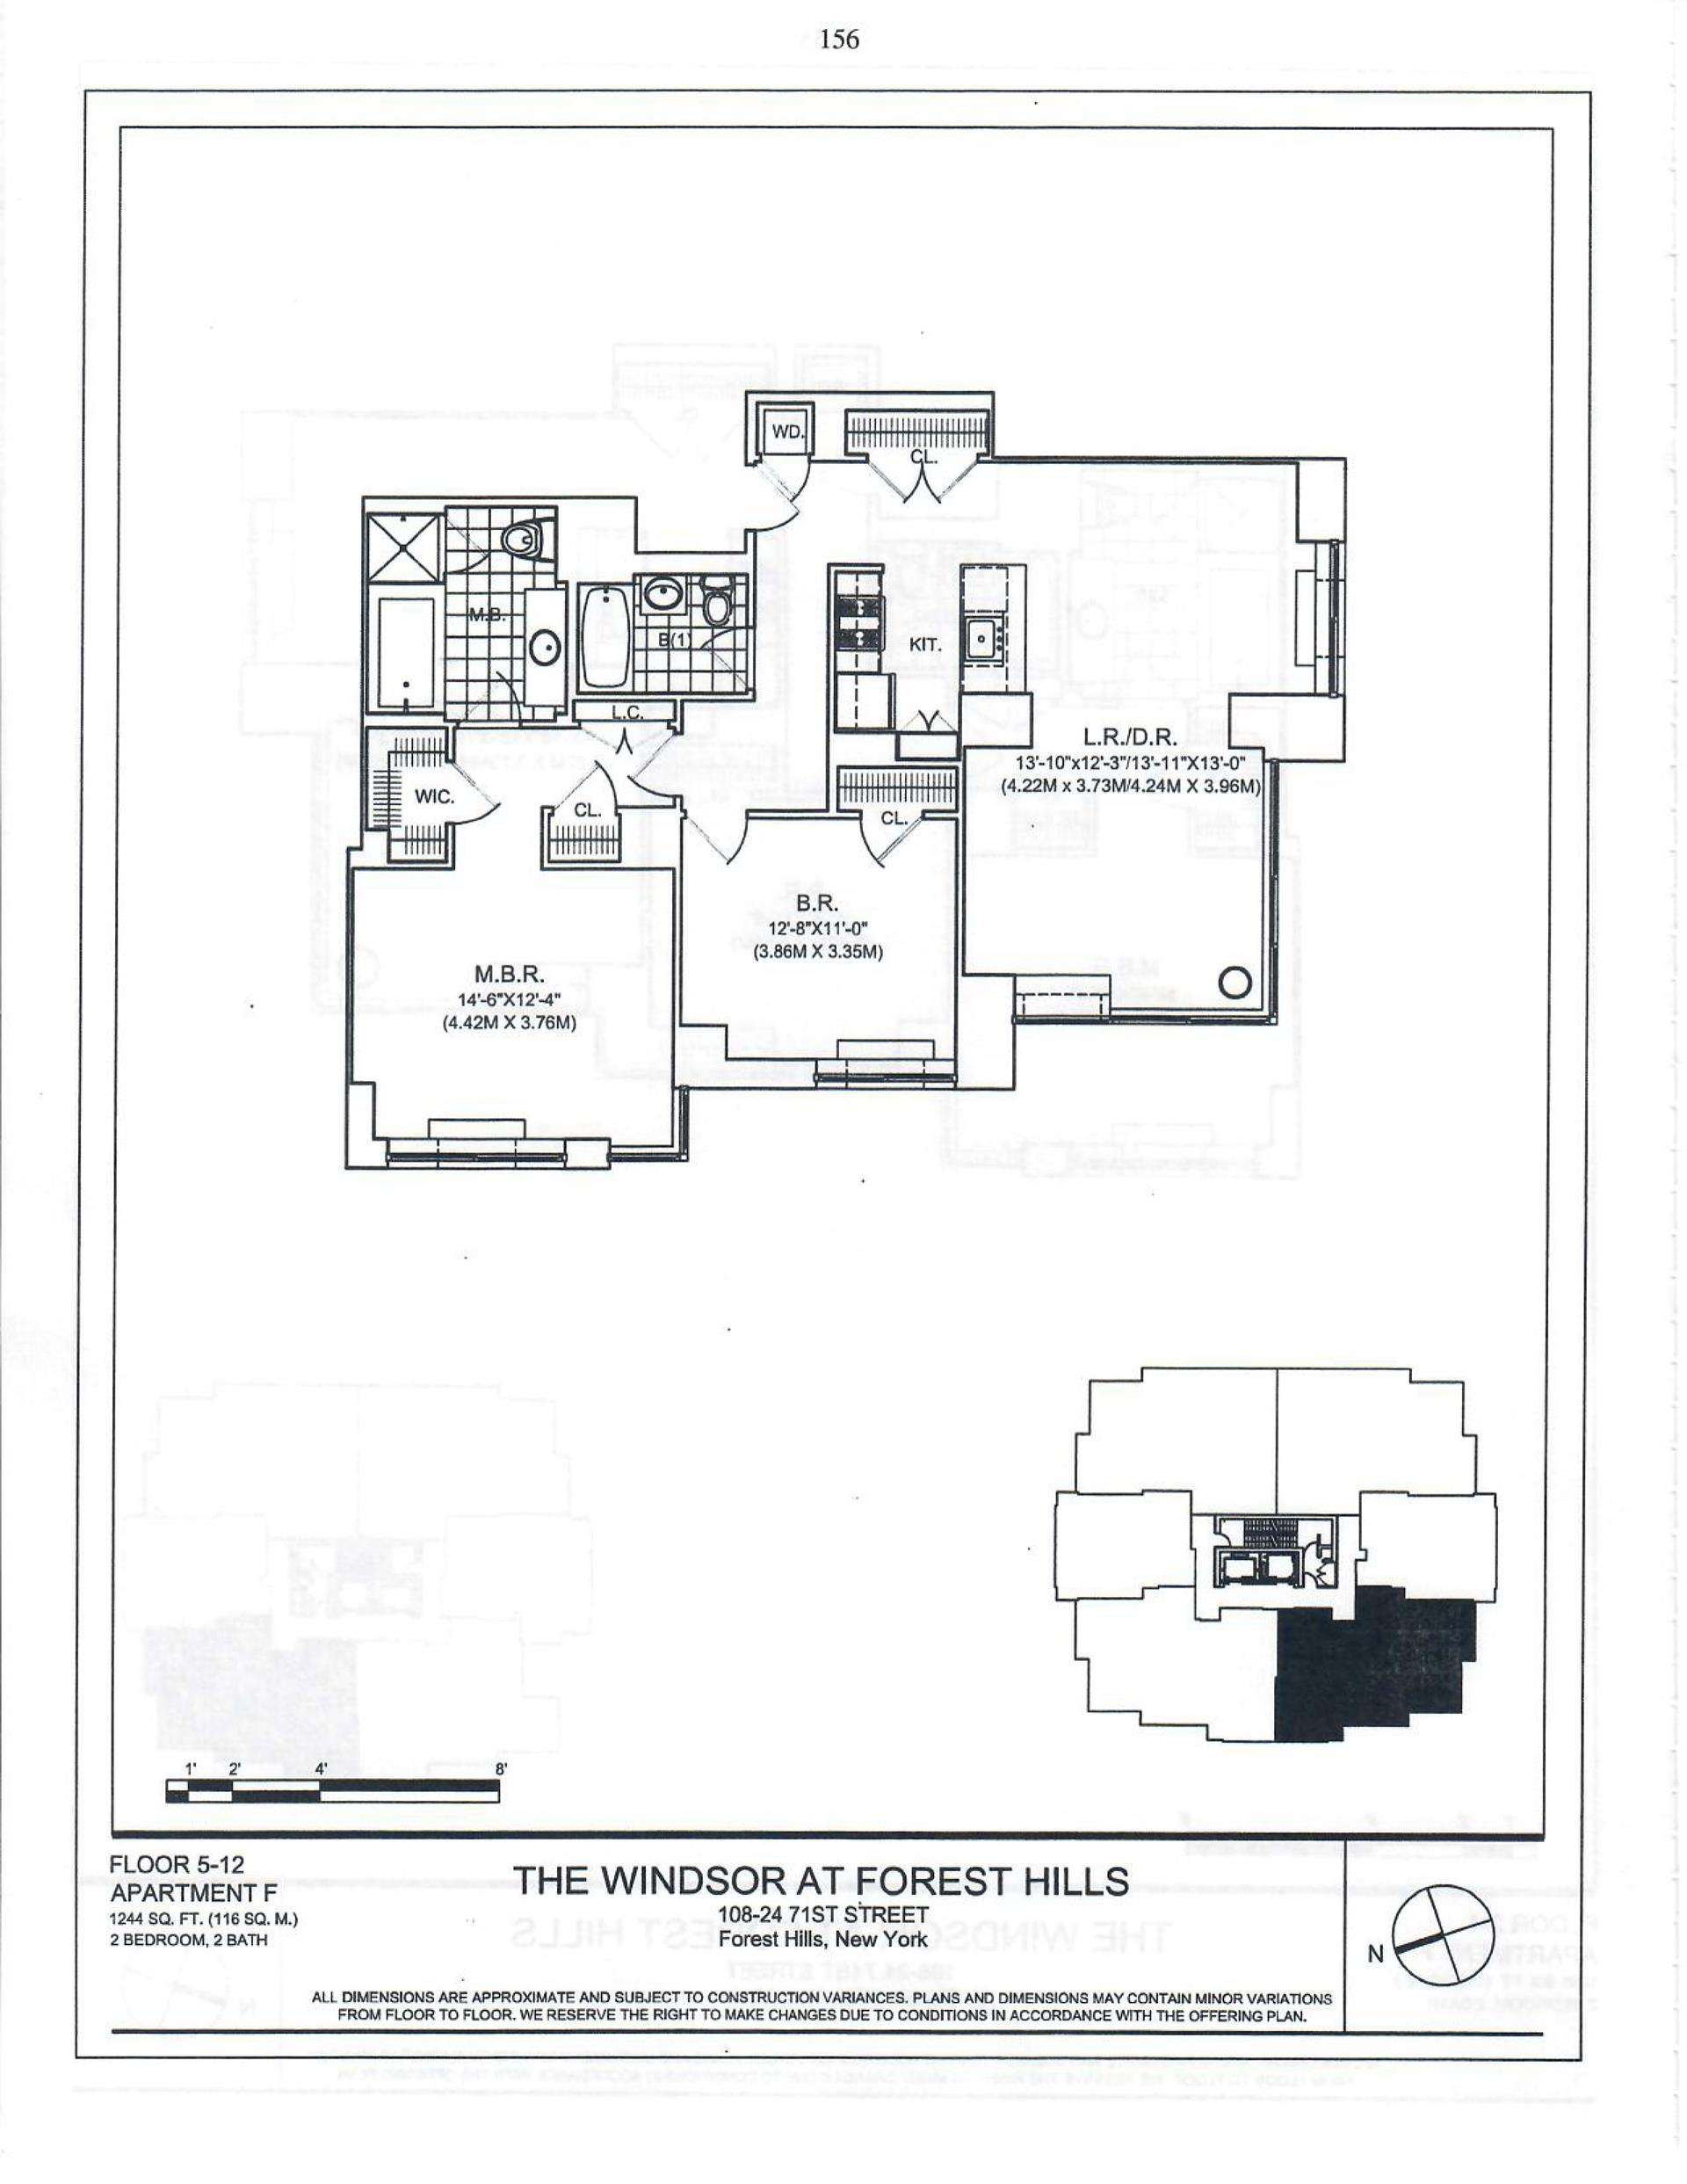 Floor plan of 107-24 71st Rd, 6F - Forest Hills, New York